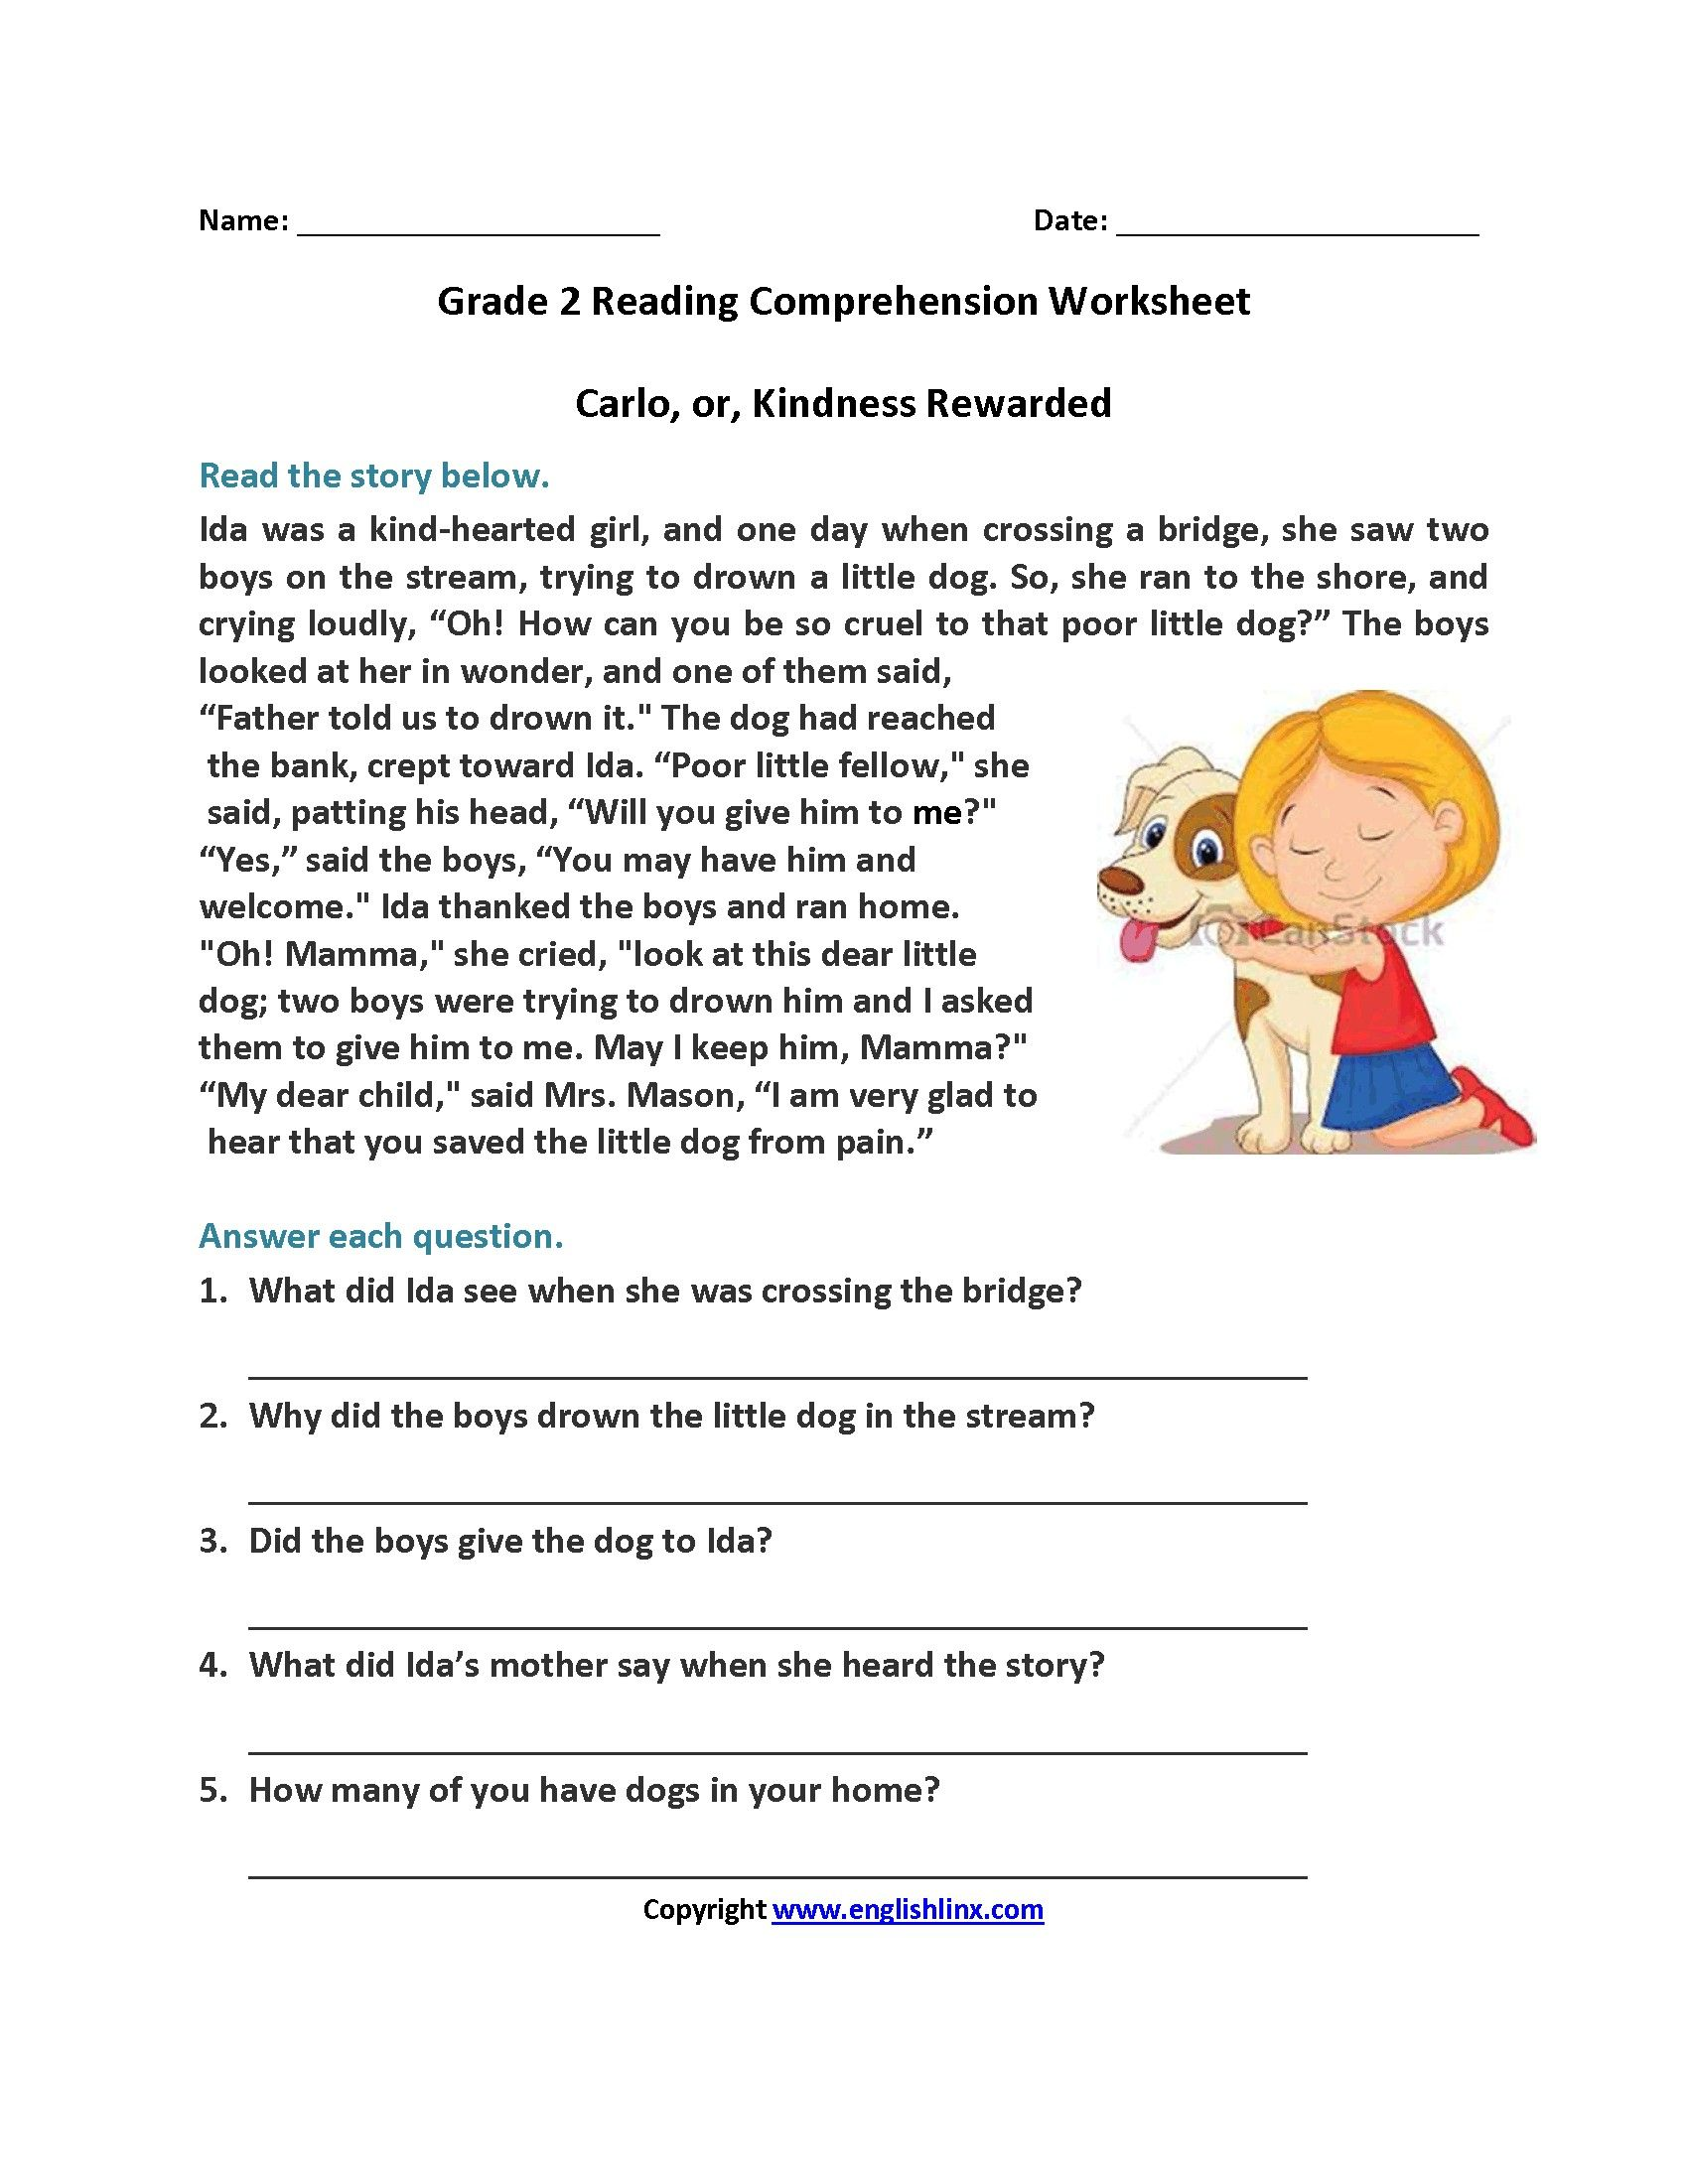 14 Accomplished Reading Worksheets For Preschool Di